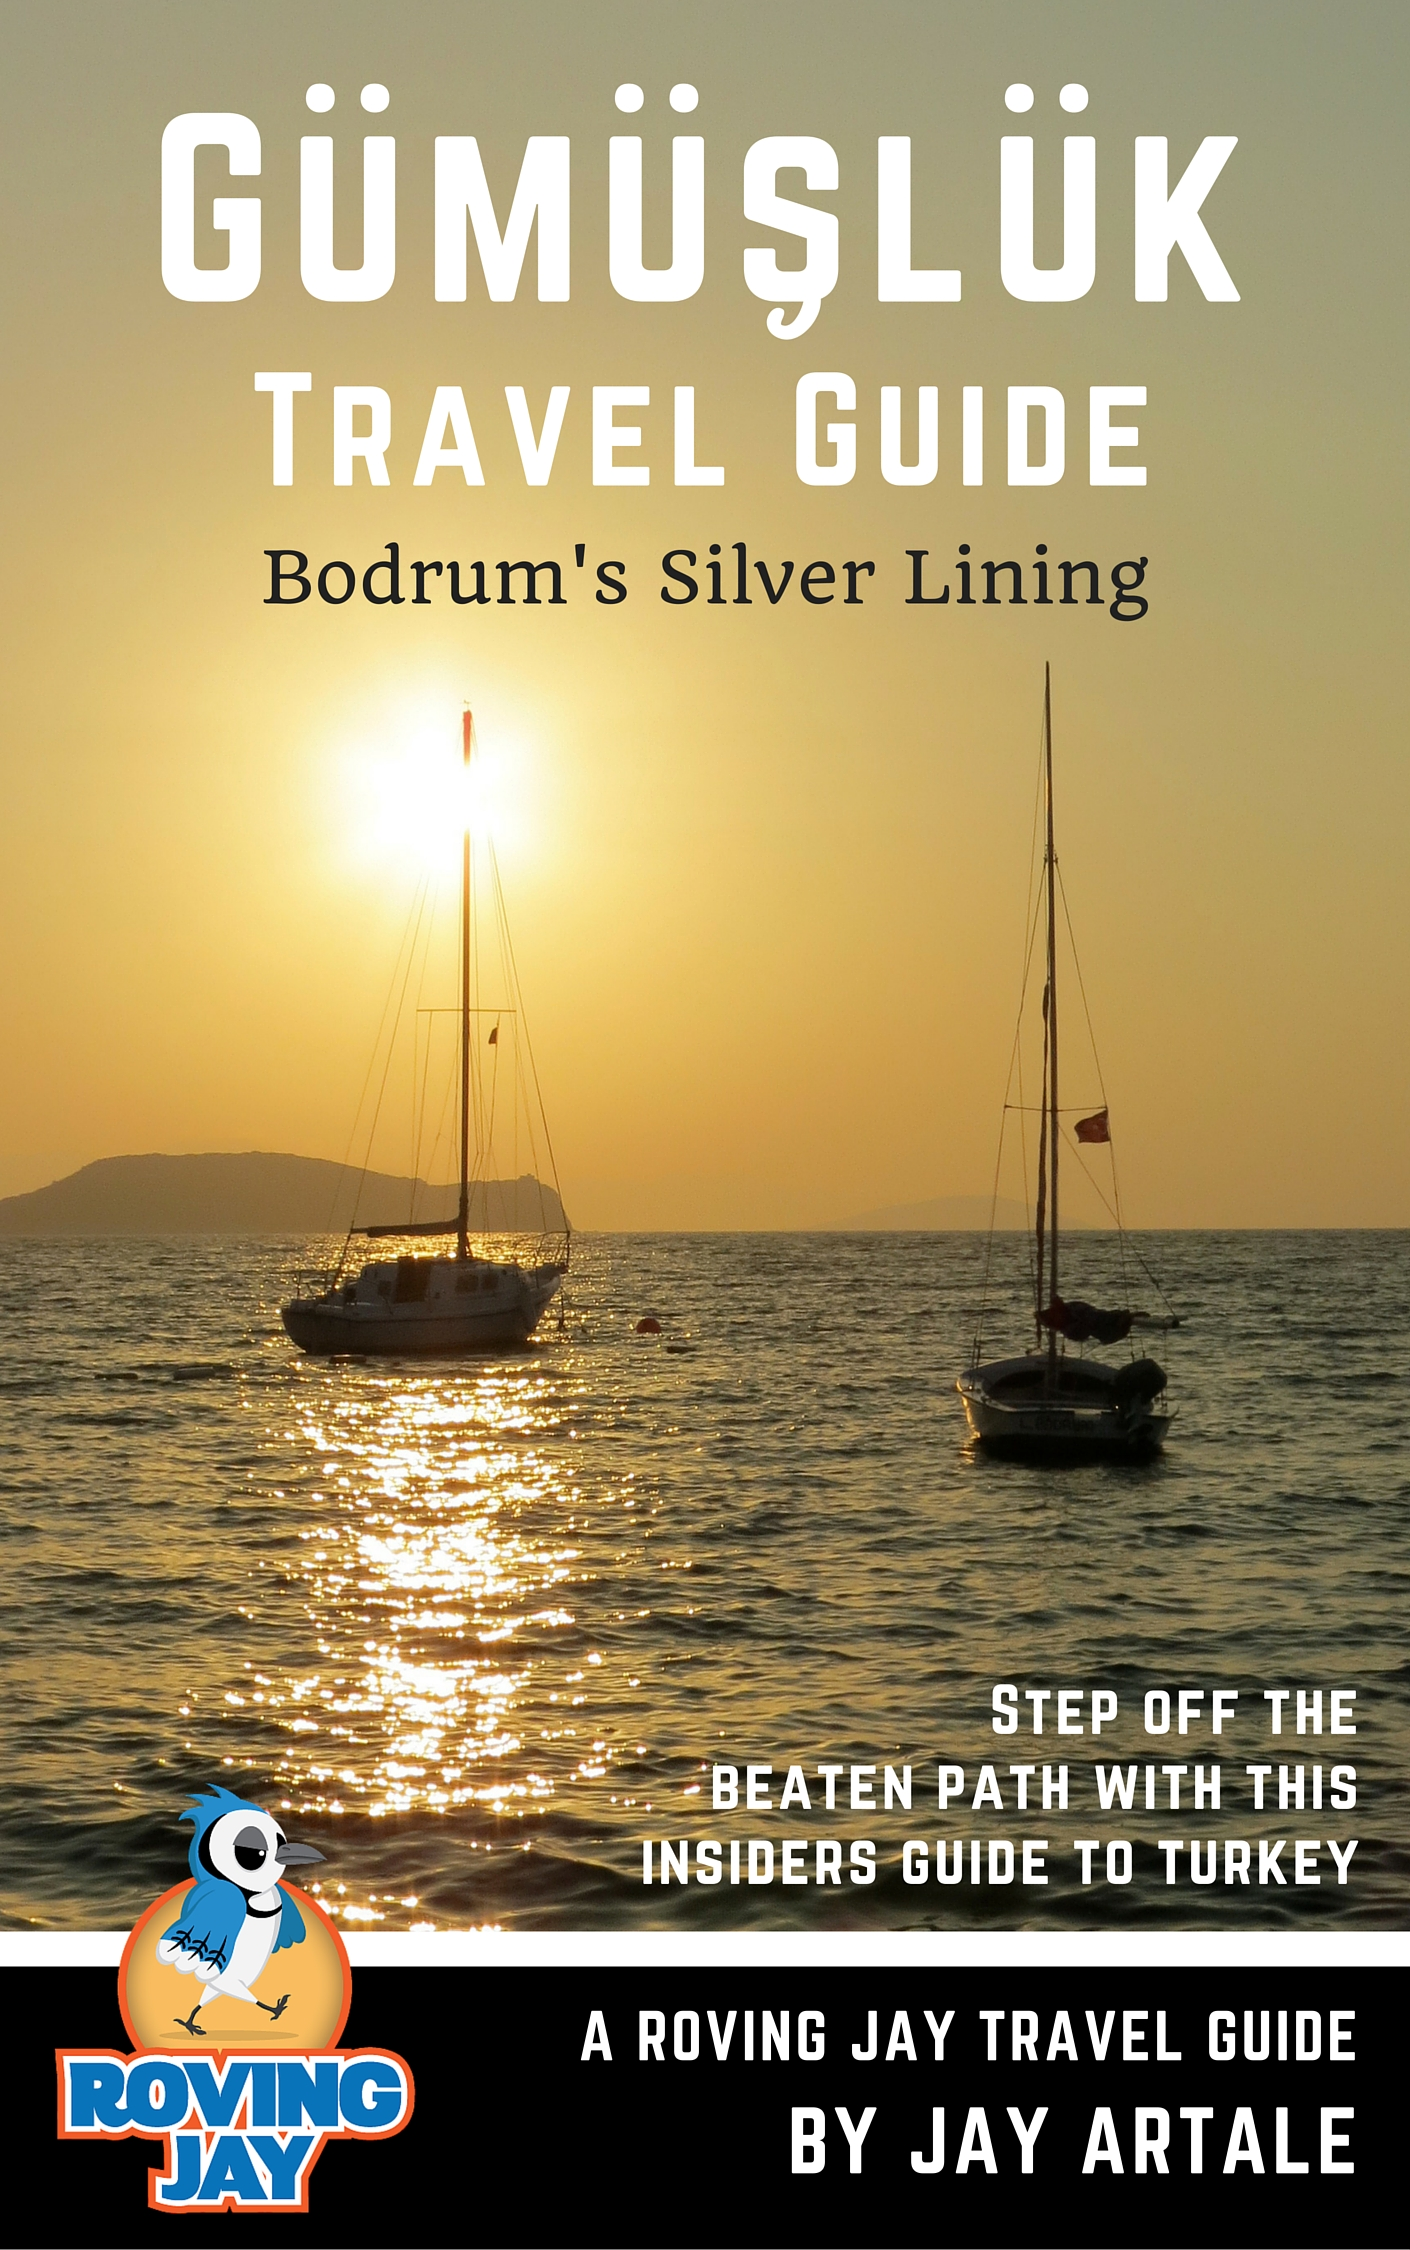 Book Cover Forros Uk ~ Bodrum peninsula travel guide sale amazon